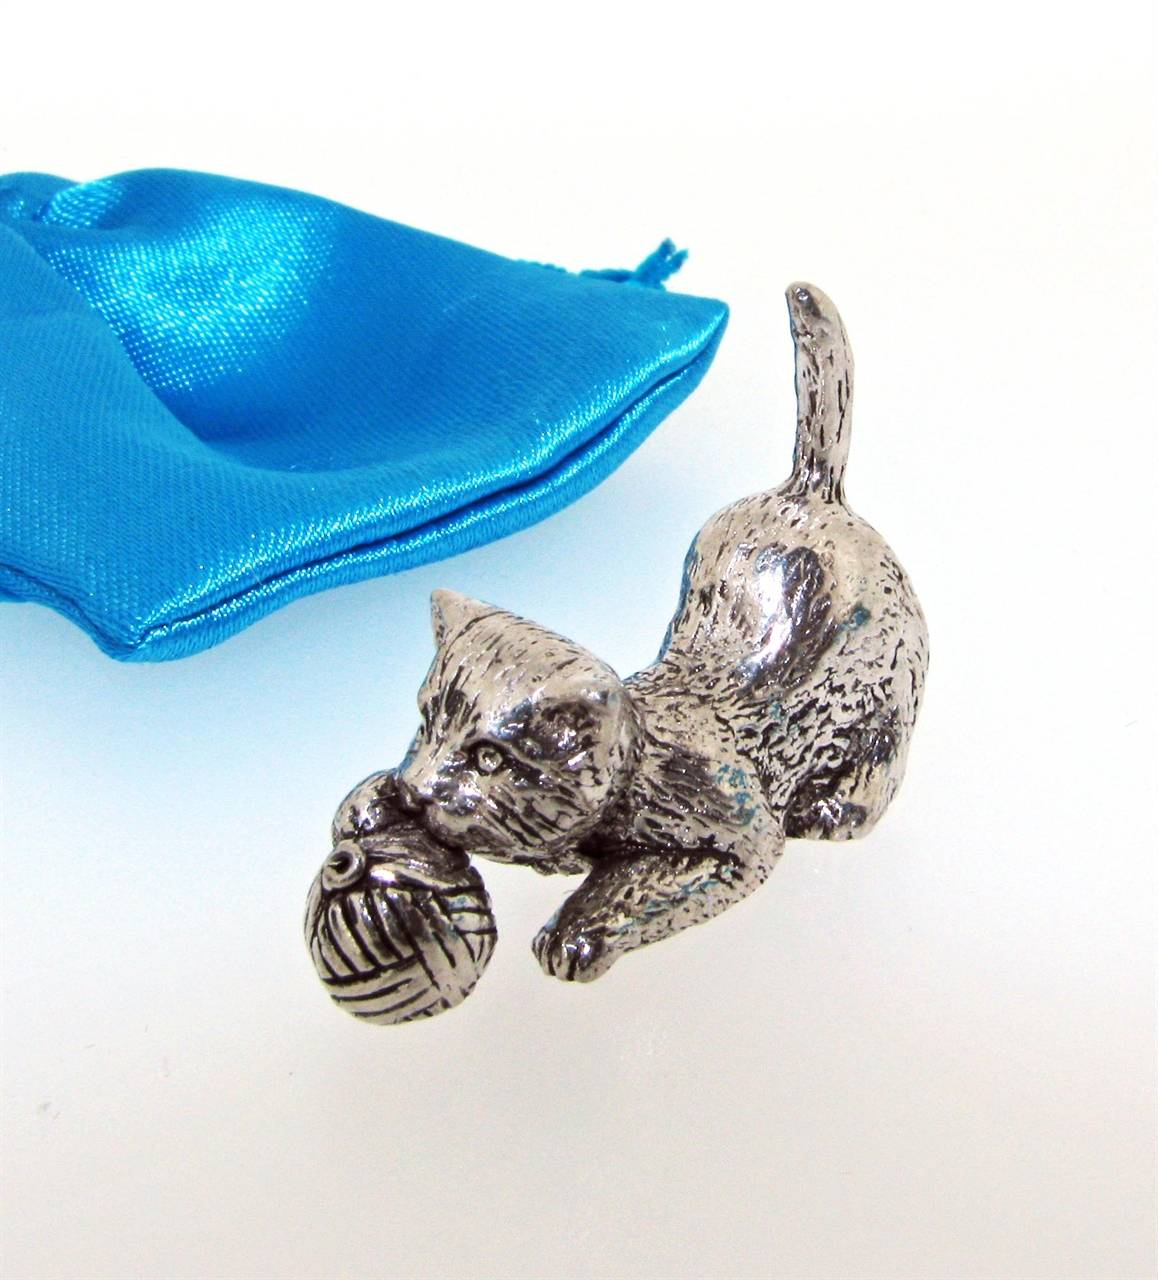 Kitten Miniature - high quality pewter gifts from Pageant Pewter